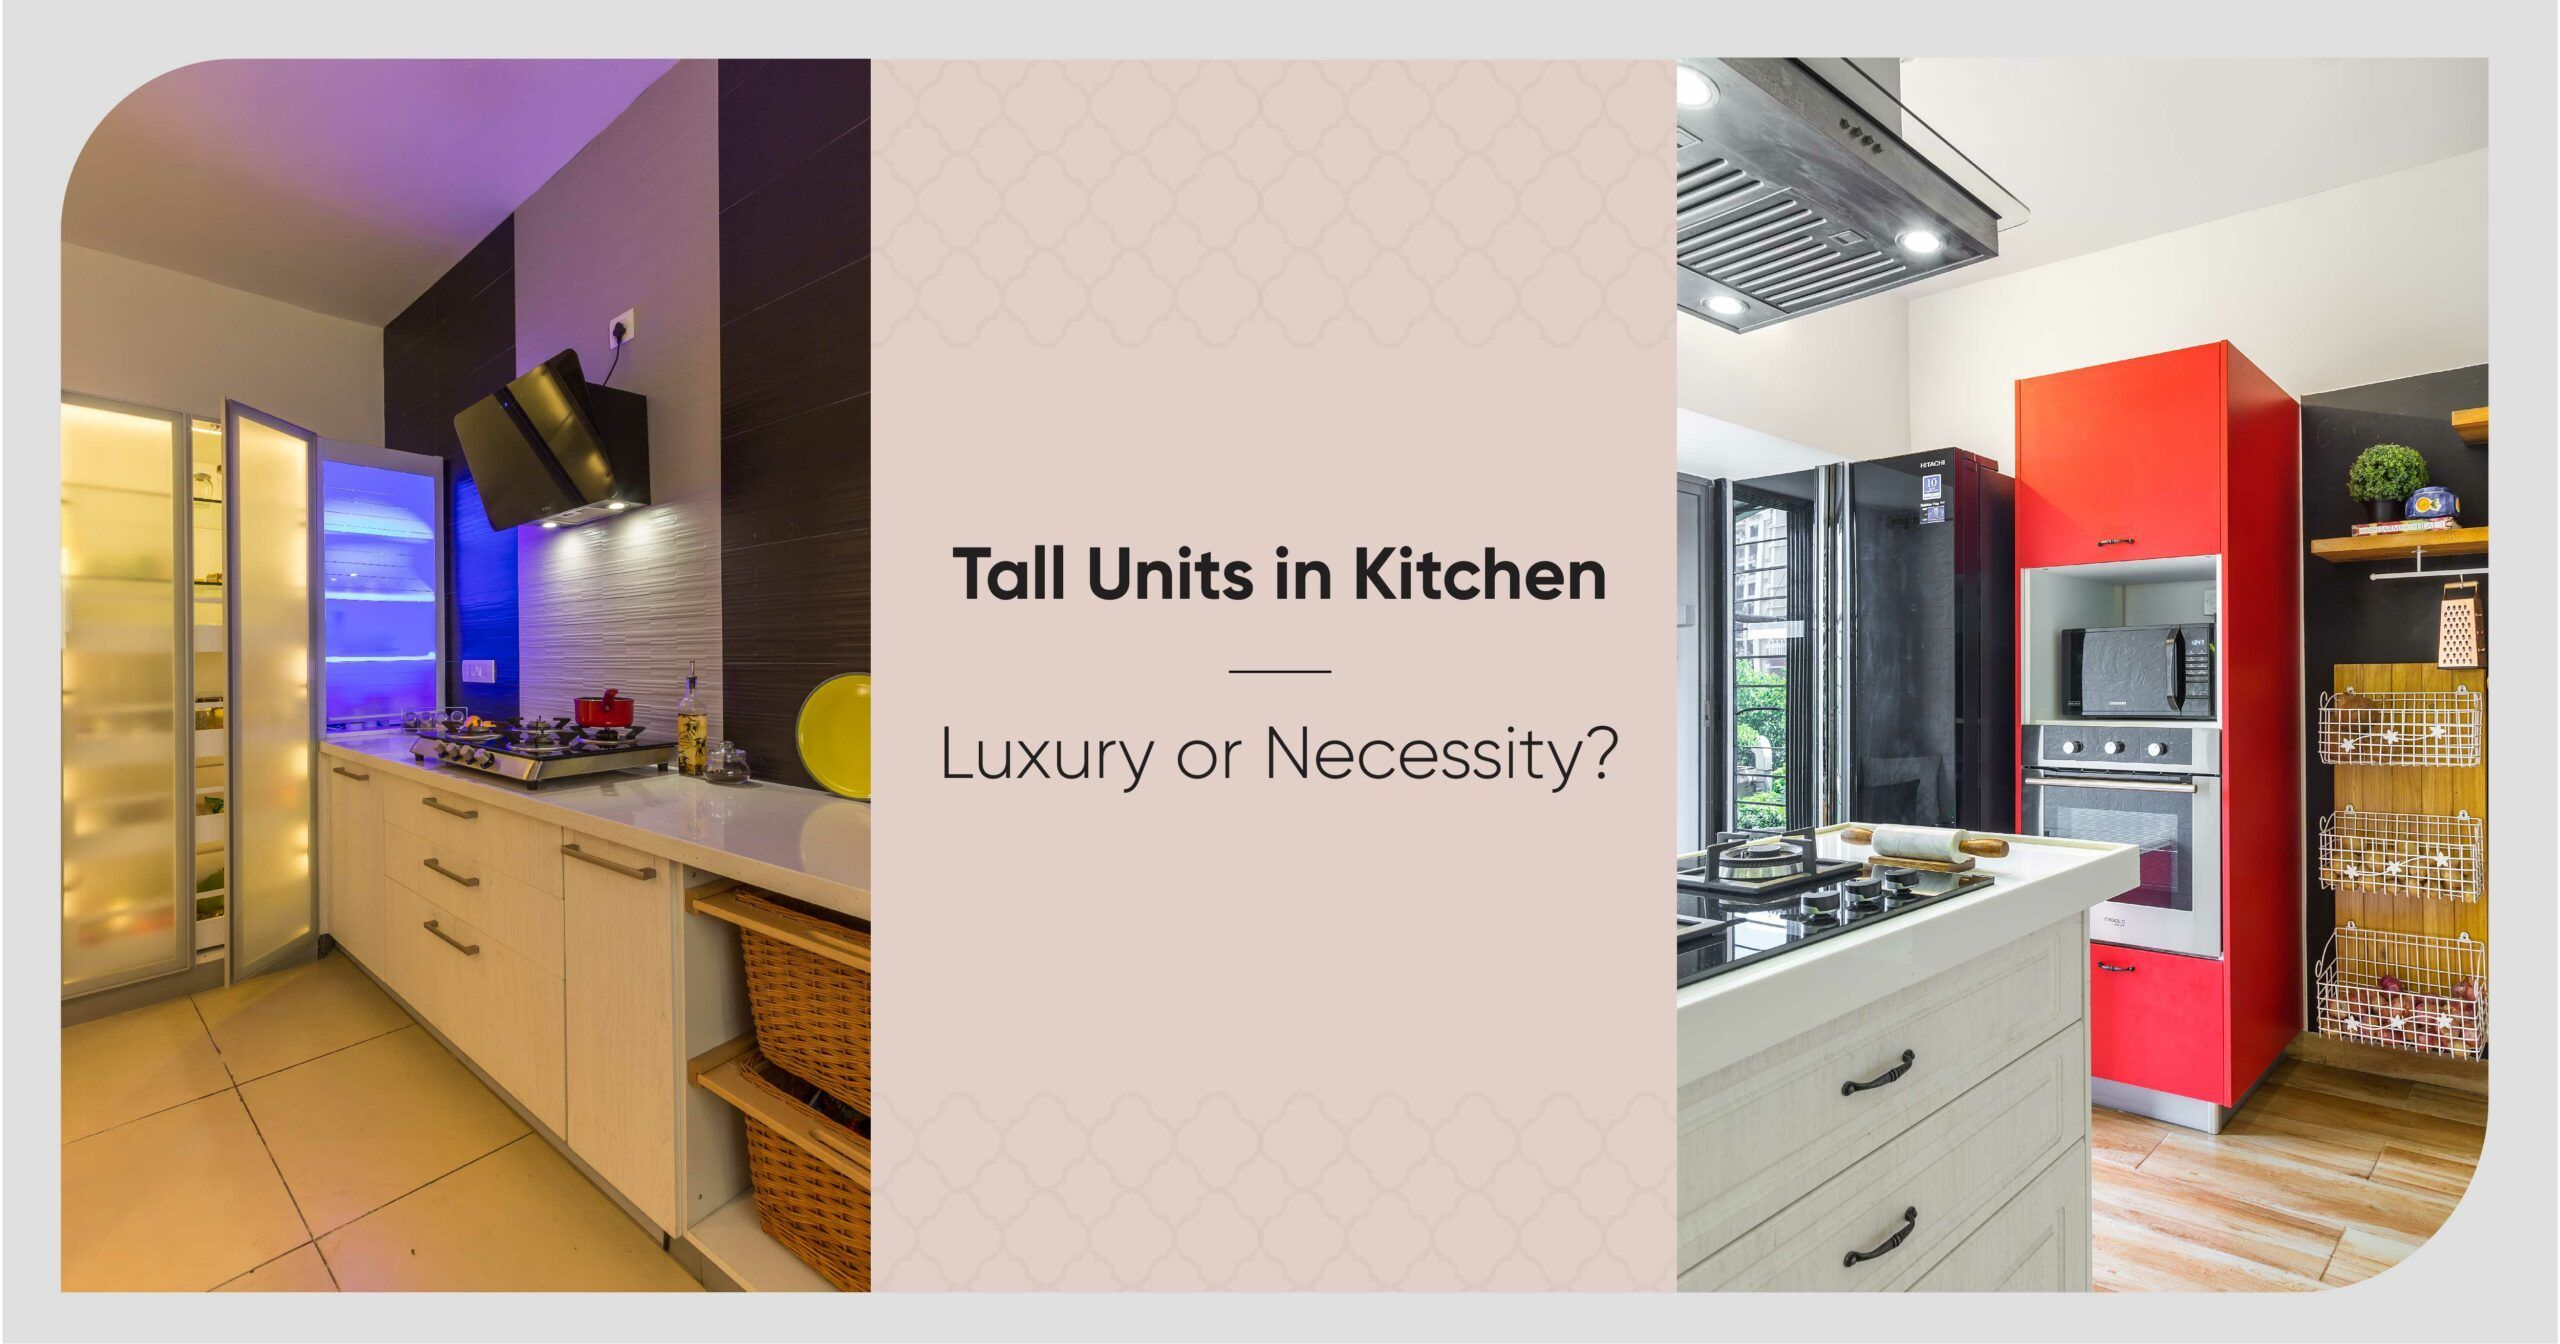 Why Designers Recommend a Tall Unit for Every Kitchen